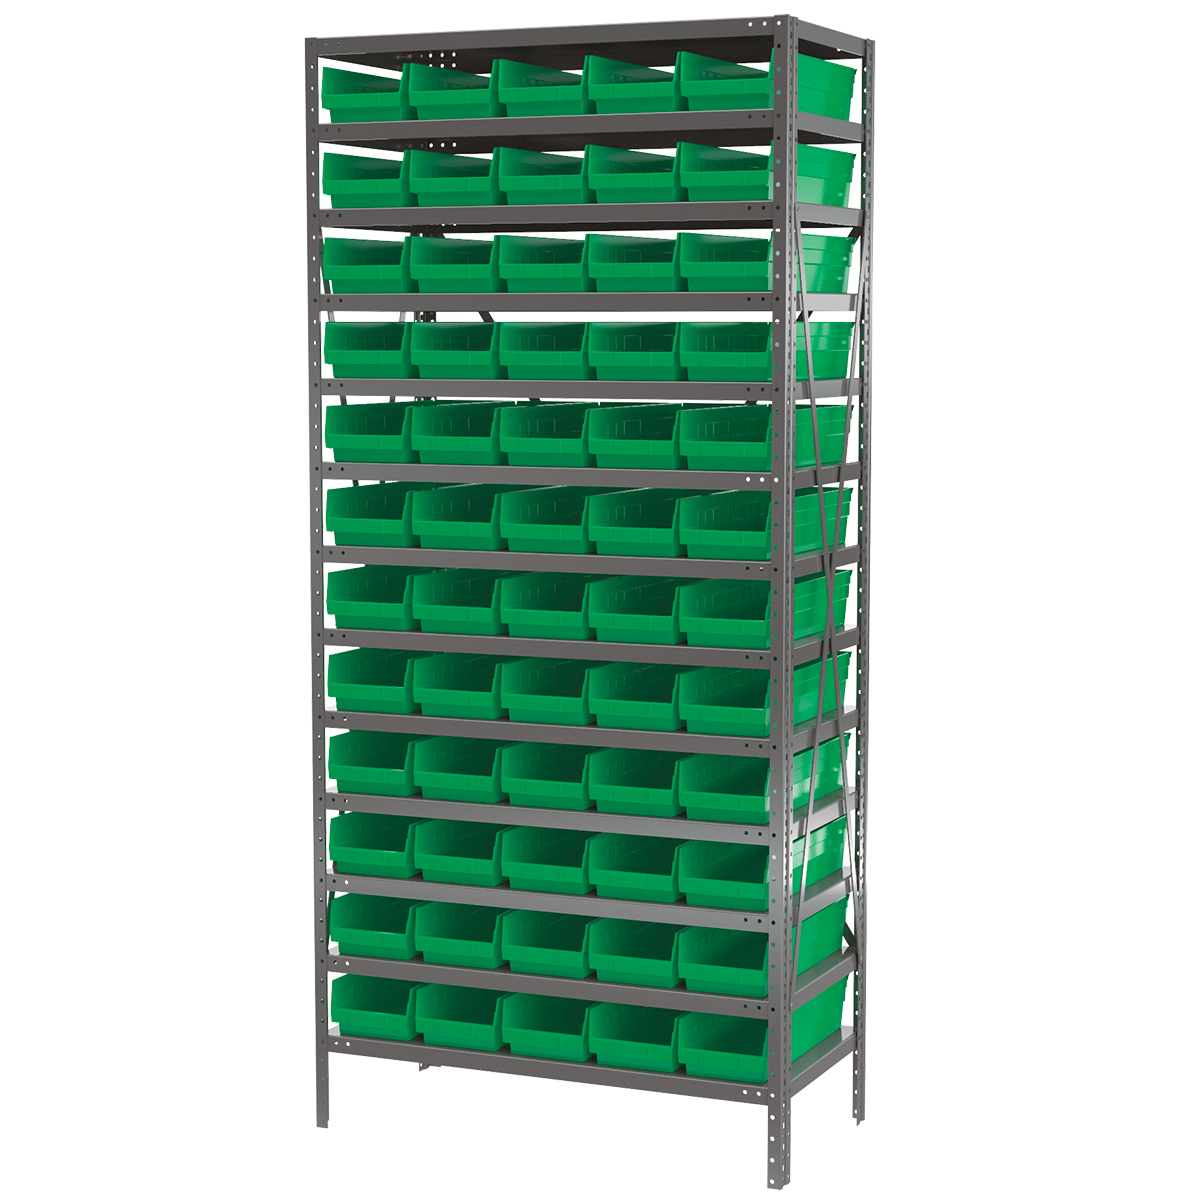 Steel Shelving Kit, 18x36x79, 60 Bins, Gray/Green.  This item sold in carton quantities of 1.